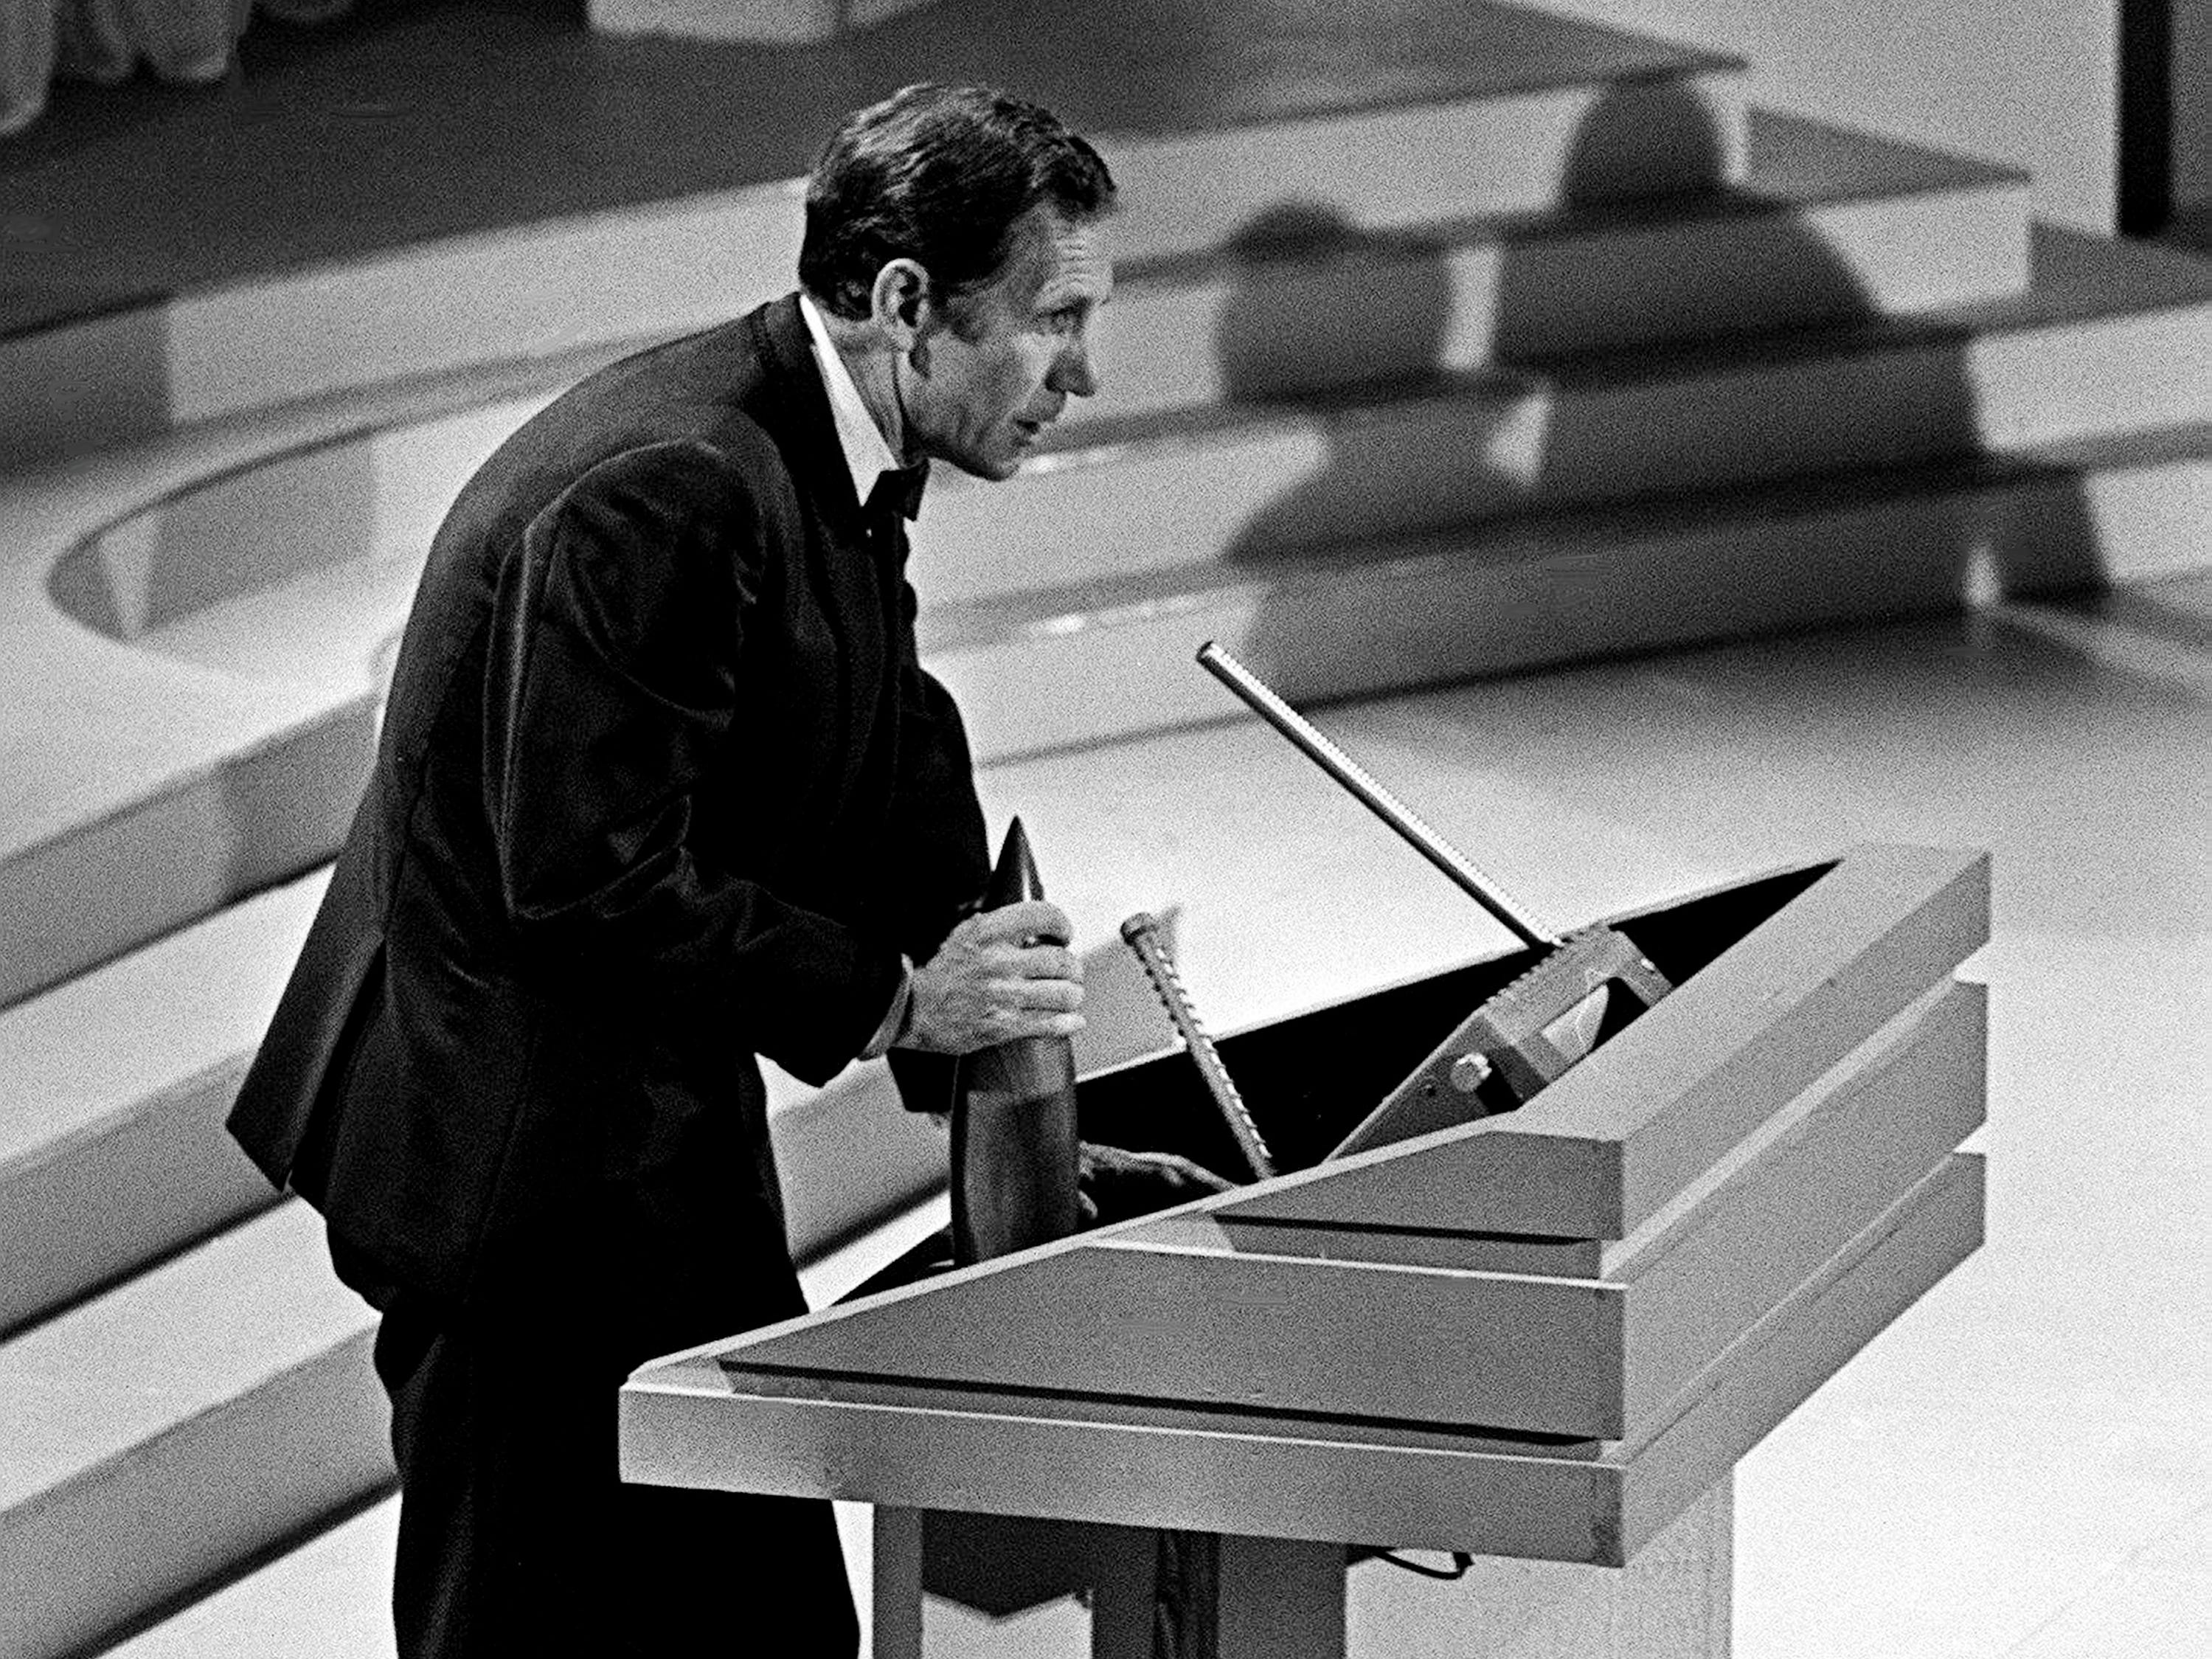 Chet Atkins speaks to the crowd after accepting his Instrumentalist of the Year award during the second annual CMA Awards show at the Ryman Auditorium on Oct. 18, 1968.